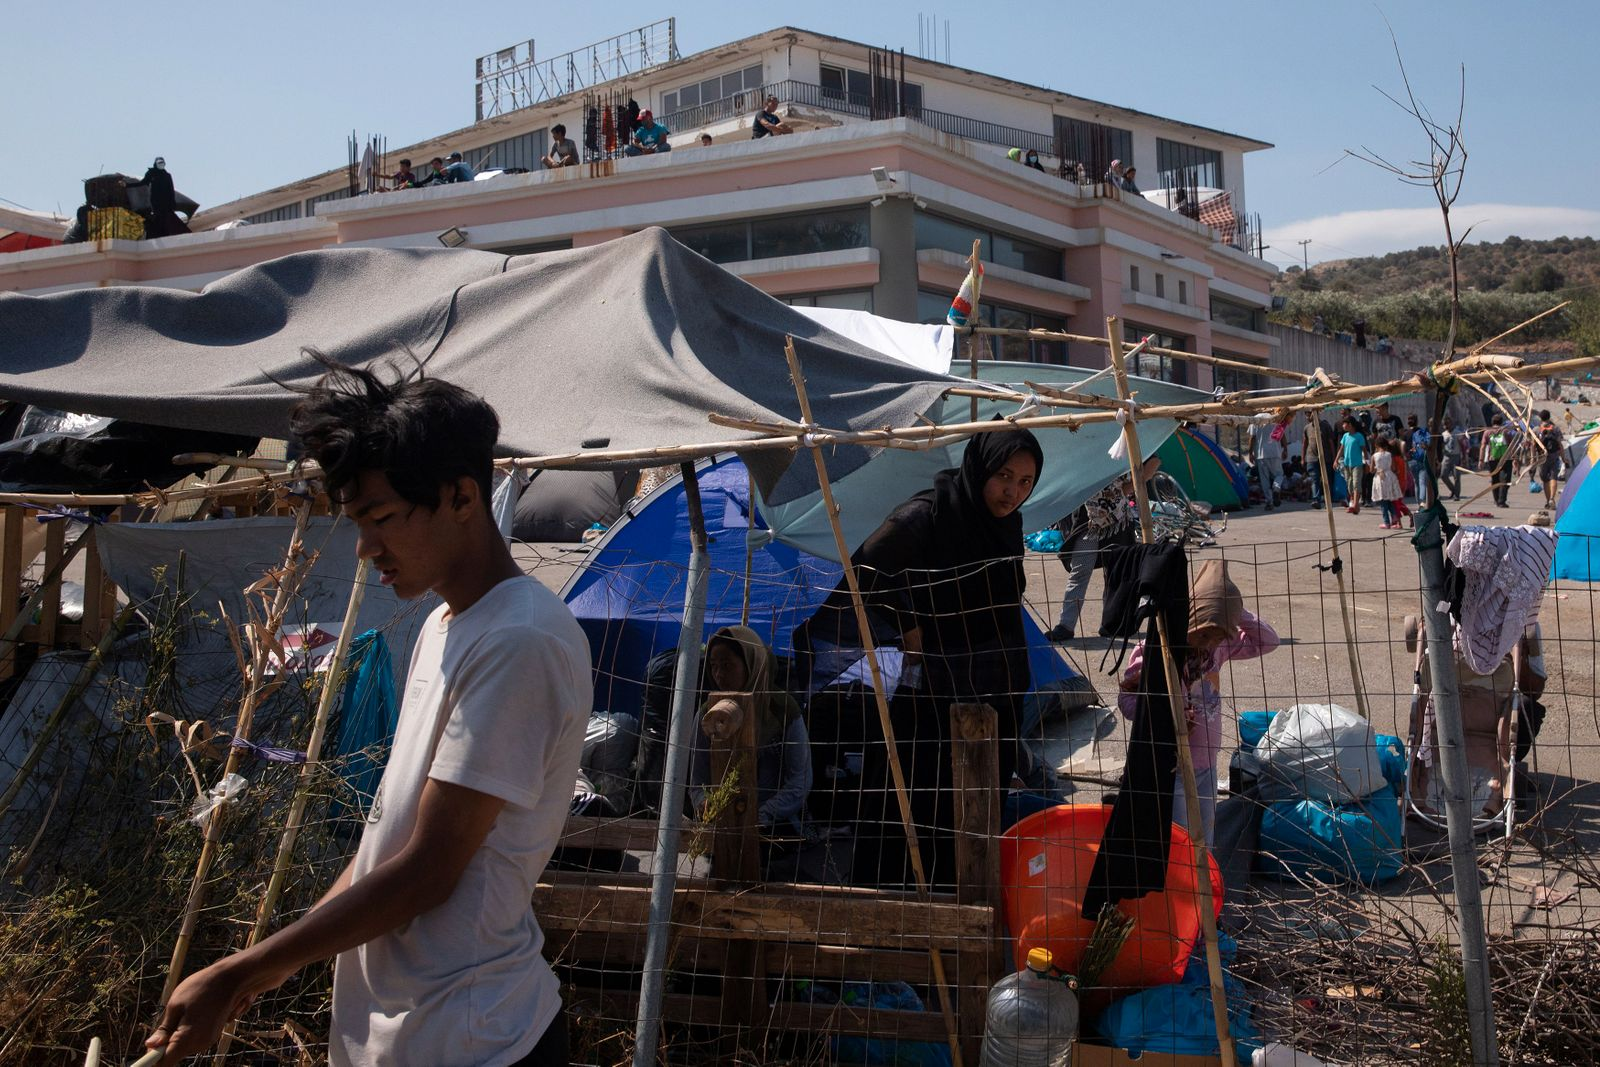 Refugees and migrants from the destroyed Moria camp are seen in the premises of an abandoned building, near a new temporary camp, on the island of Lesbos